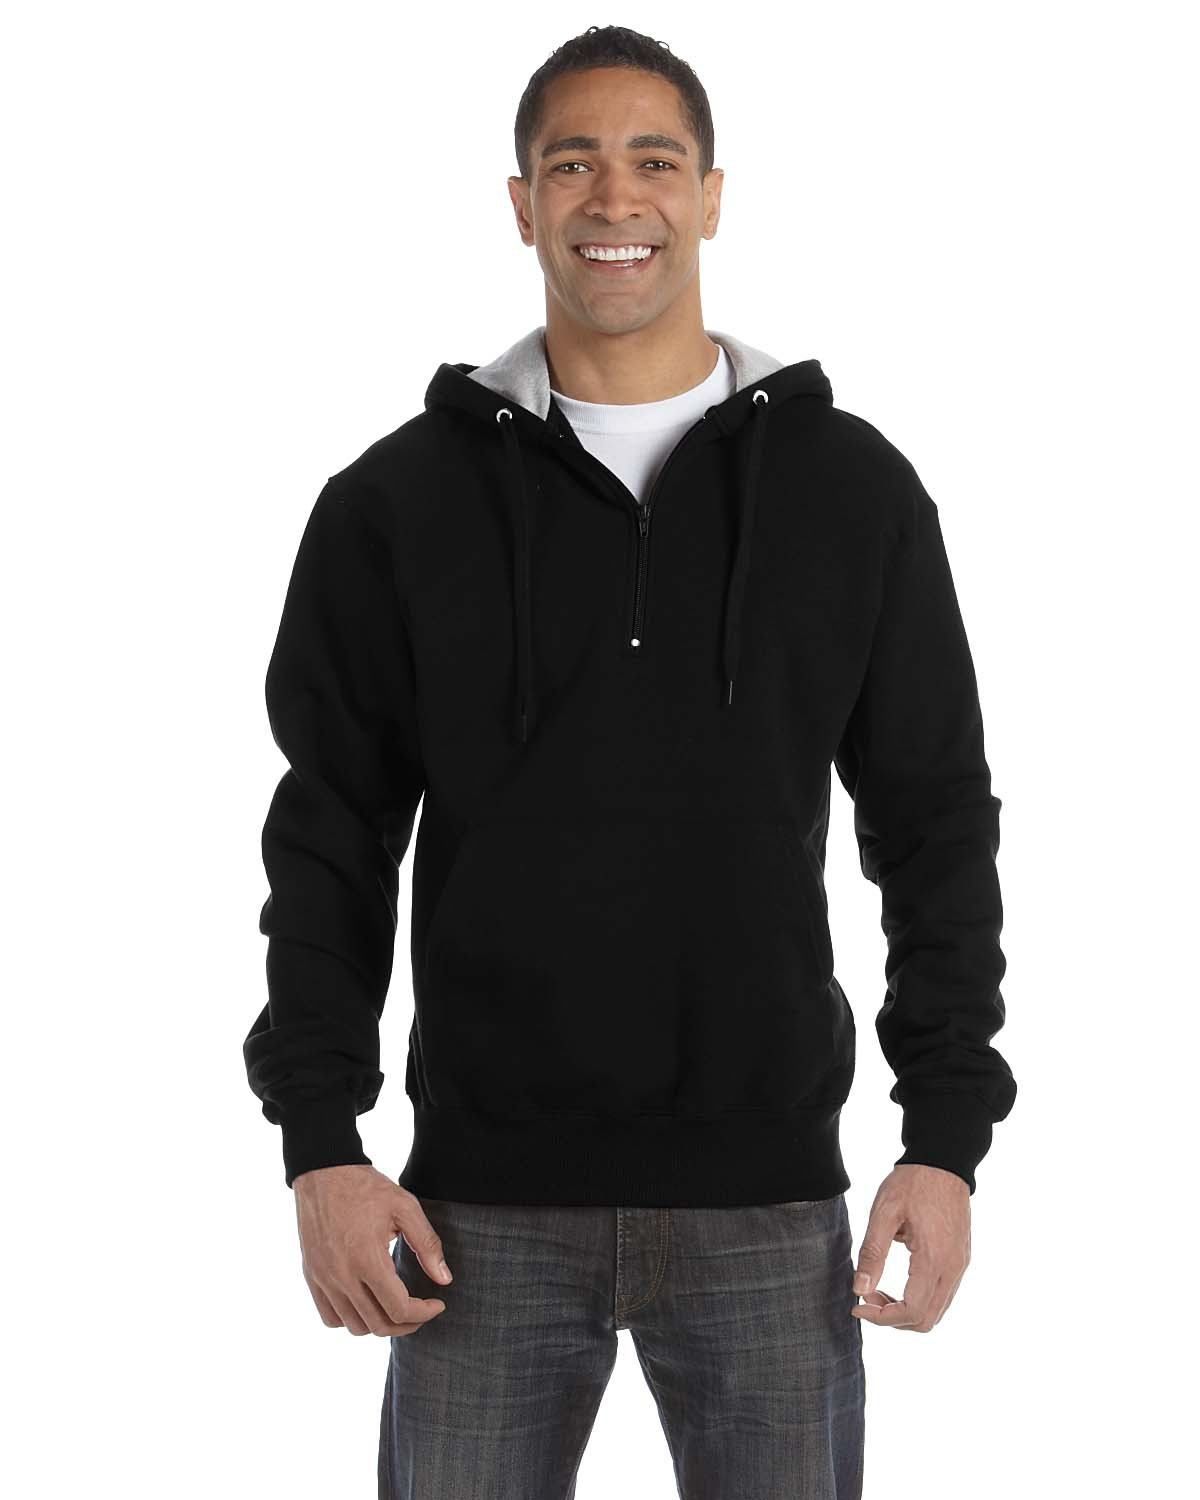 Wholesale pullover hoodies